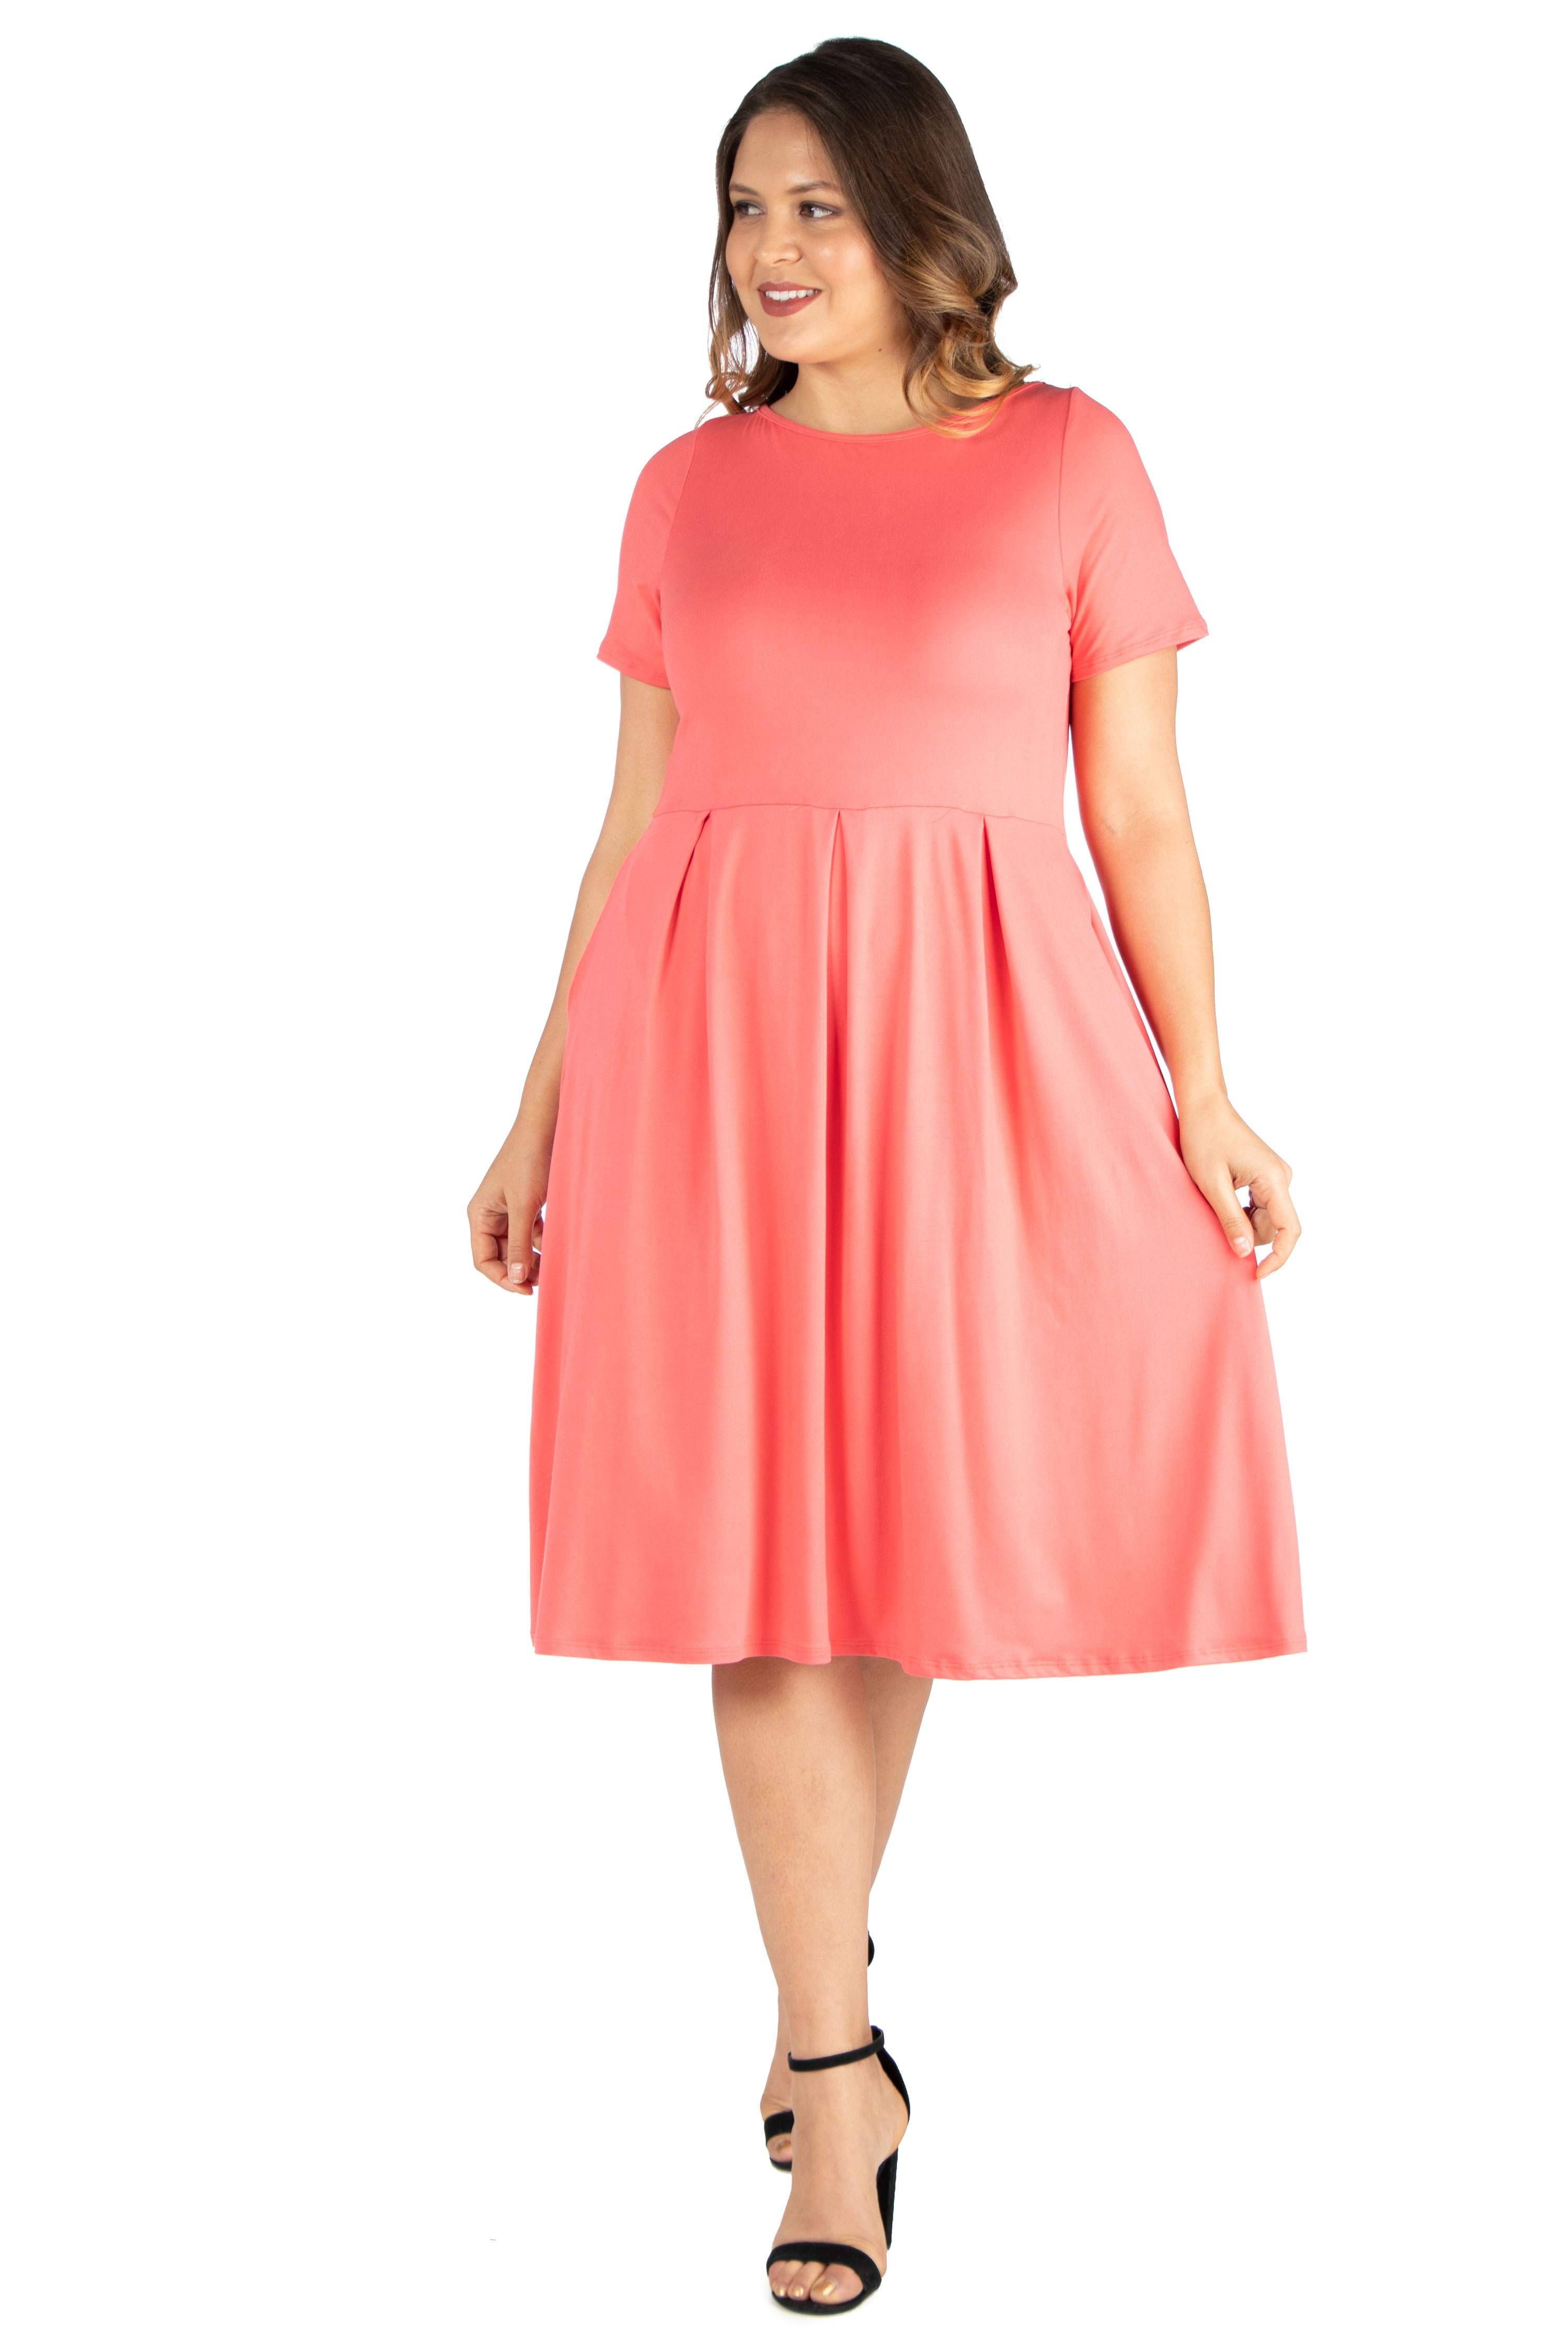 Women's Plus Size Short Sleeve Midi Skater Dress With Pockets